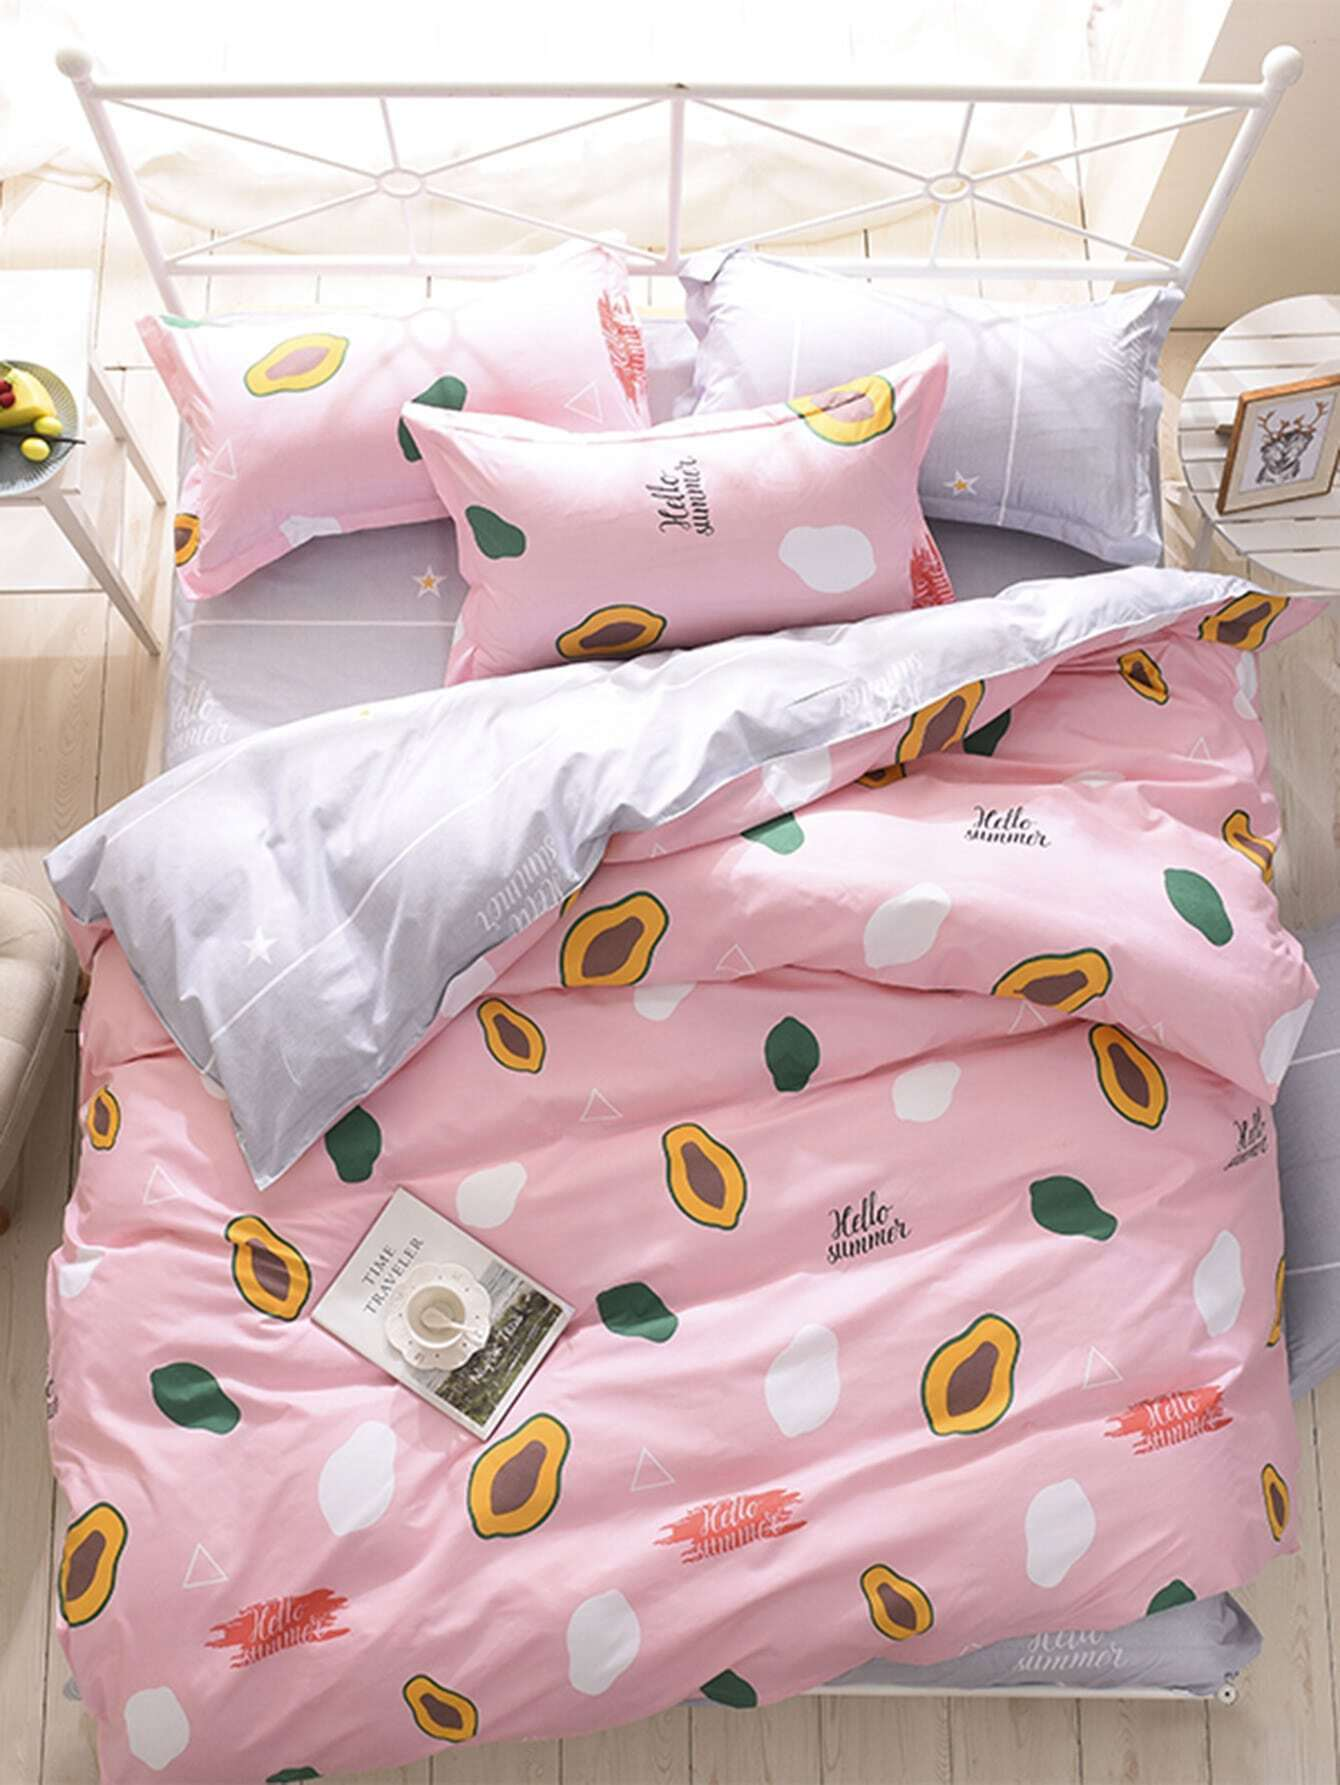 1.2m 4Pcs Fruit Print Duvet Cover Set 1 2m 4pcs fruit print duvet cover set